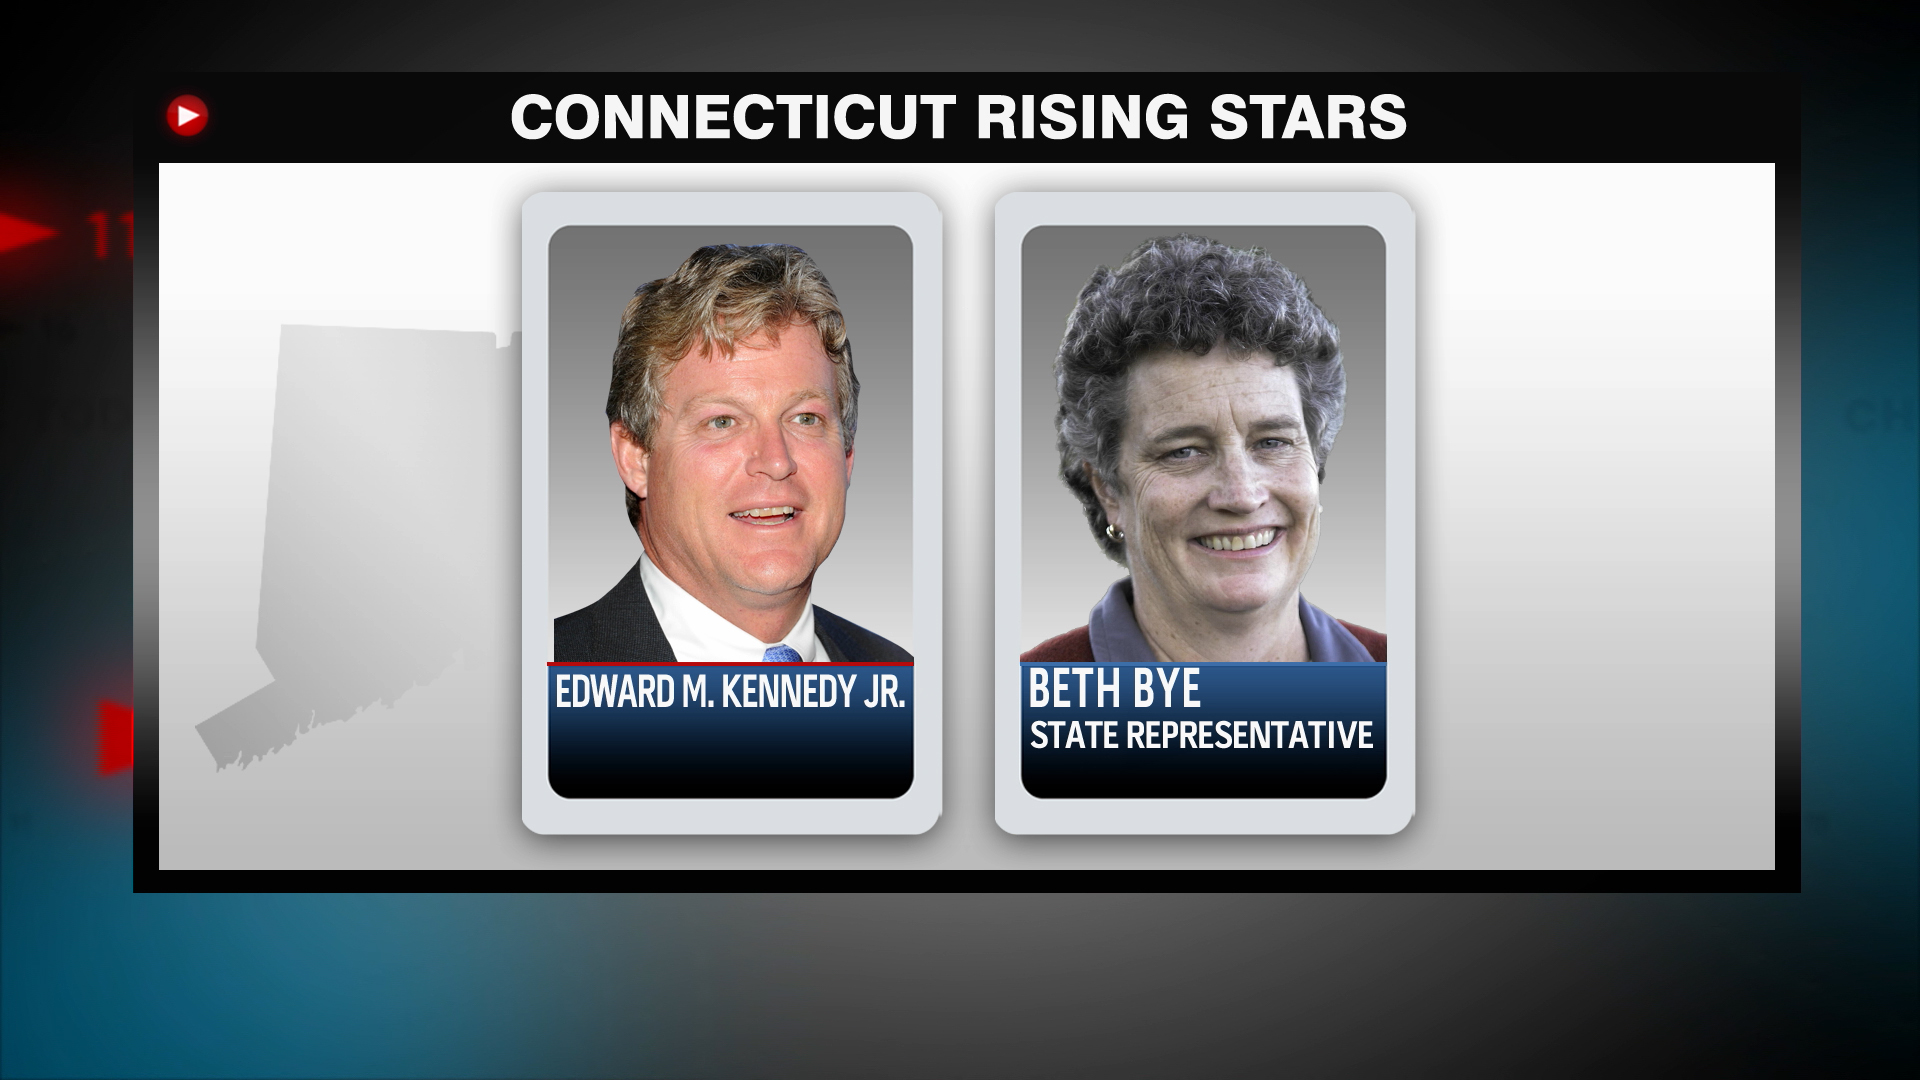 Connecticut and Rhode Island's rising stars